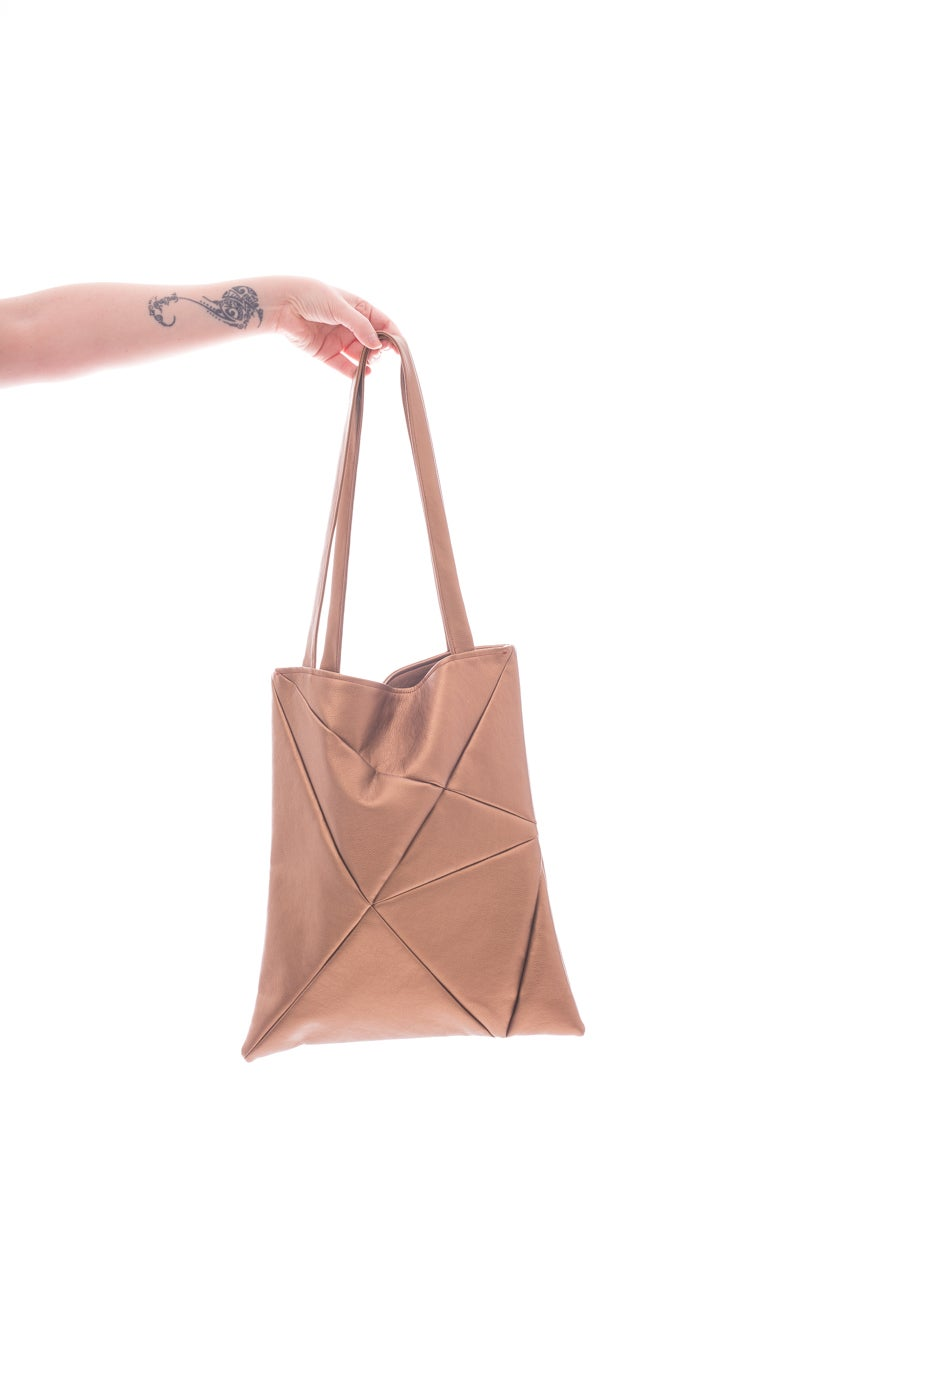 Image of GEO Bag copper